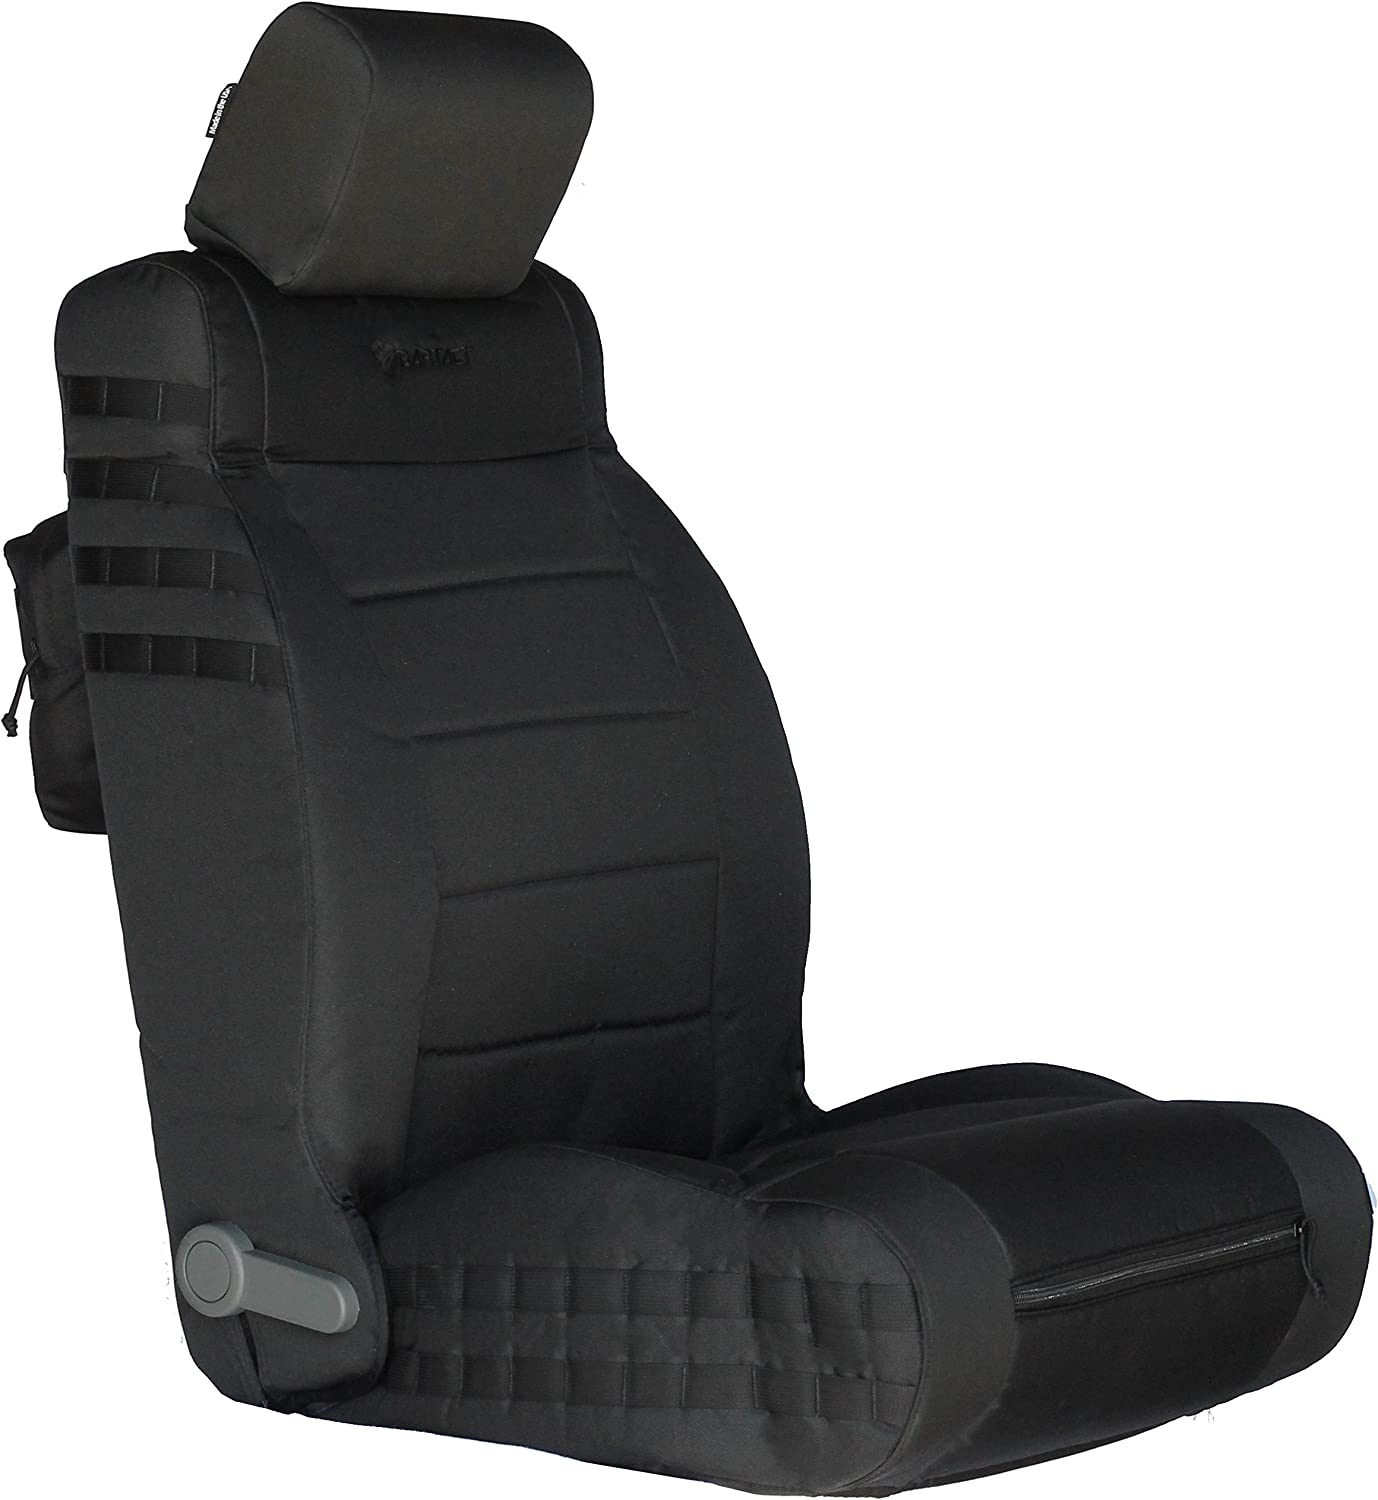 Bartact BTJKSC1112FPBB Black//Black Mil-Spec with MOLLE System Front Seat Covers 2011-2012 Jeep Wrangler JK Pair